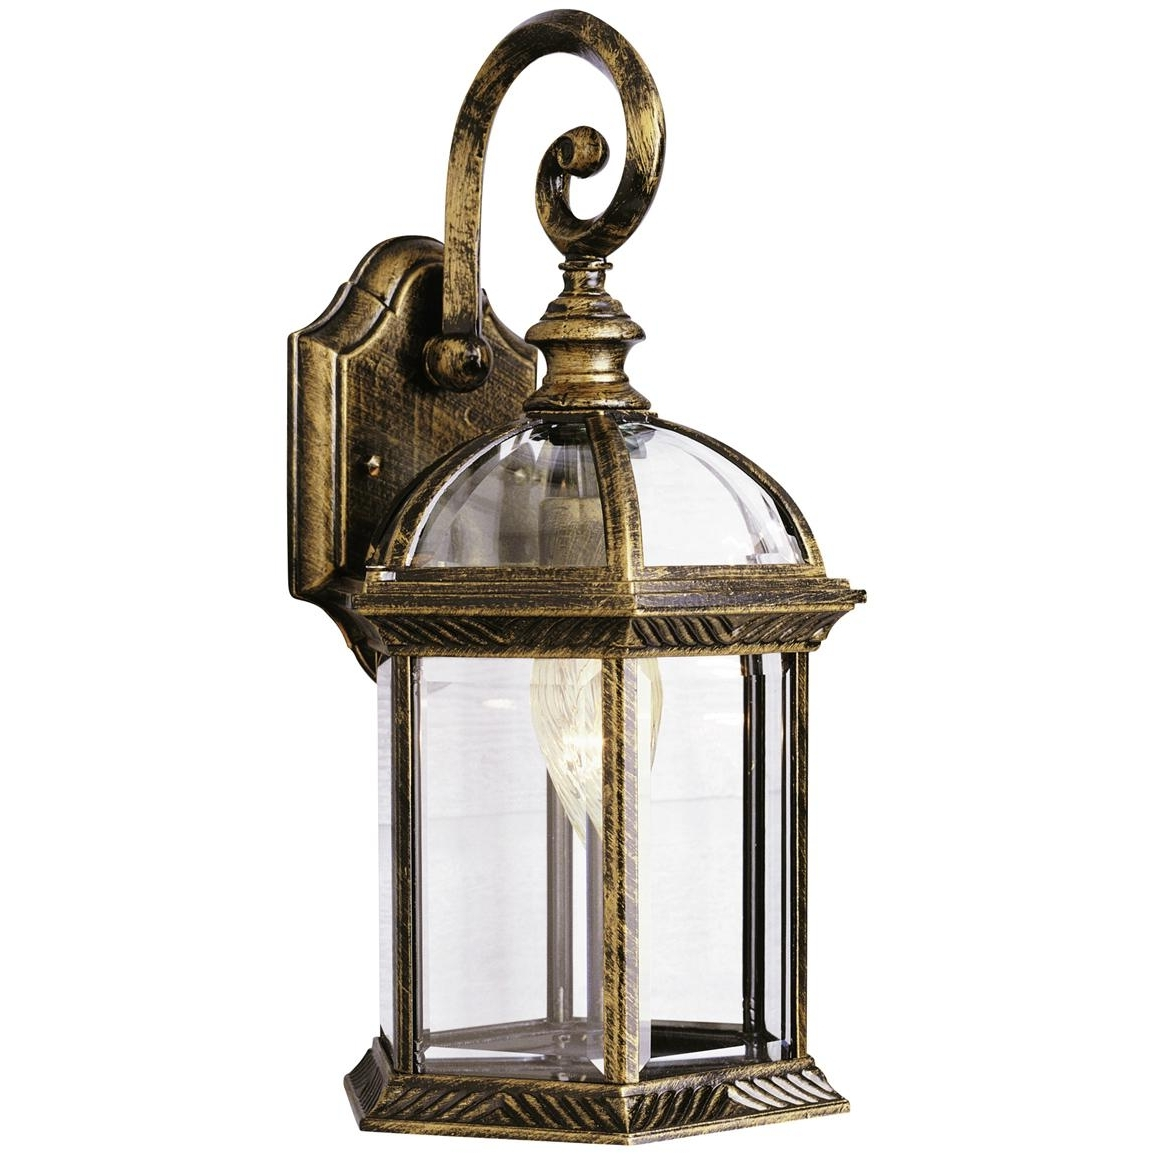 Trans Globe Lighting 1 – Light Outdoor Black And Gold Wall Lantern Throughout Current Outdoor Wall Lantern By Transglobe Lighting (View 18 of 20)